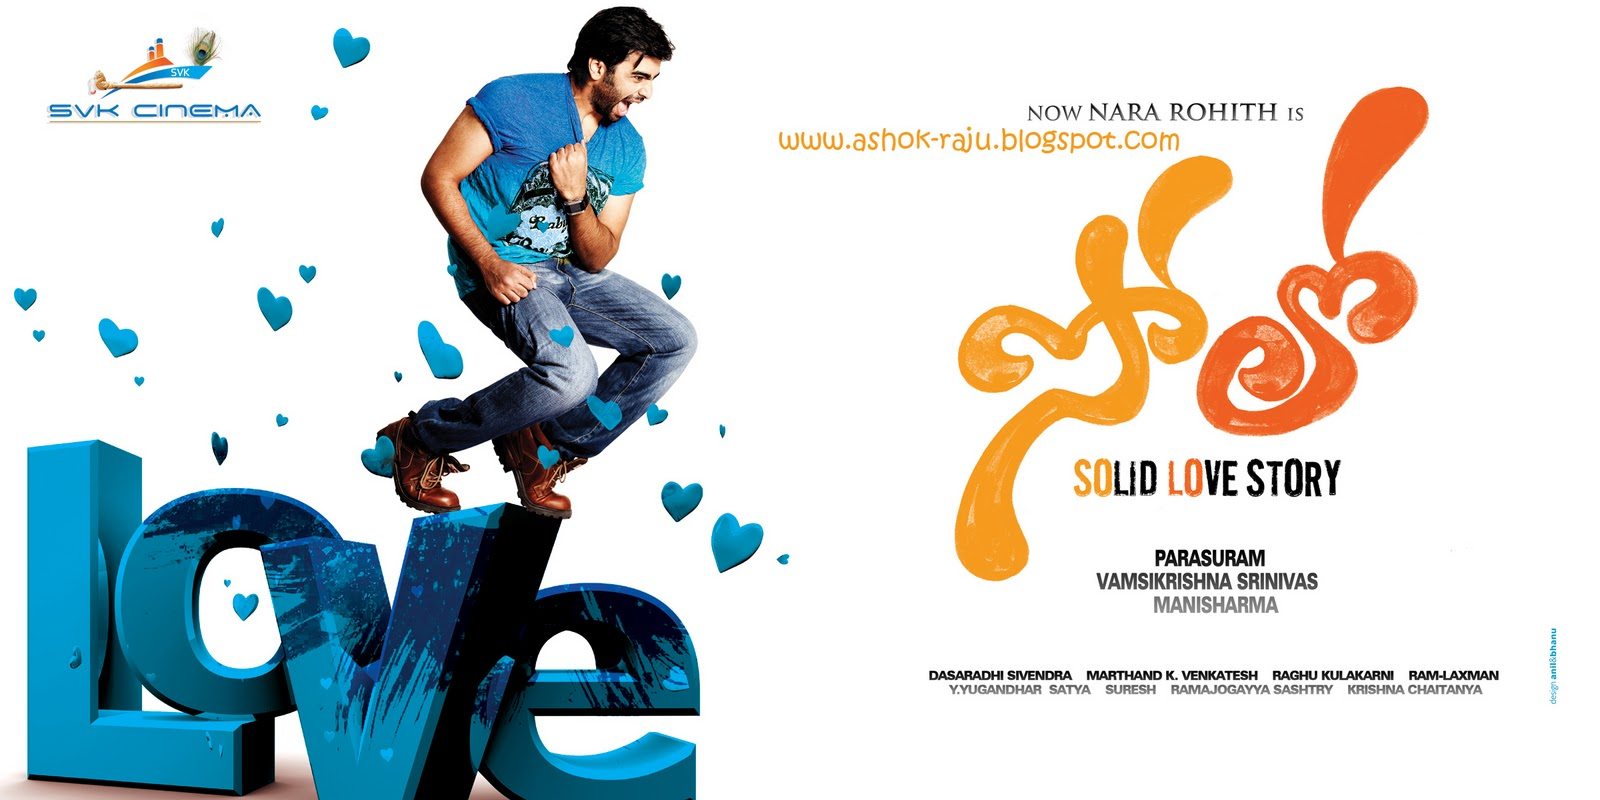 Download Wallpaper Logo Raju - 242143770  Collection_751023.jpg